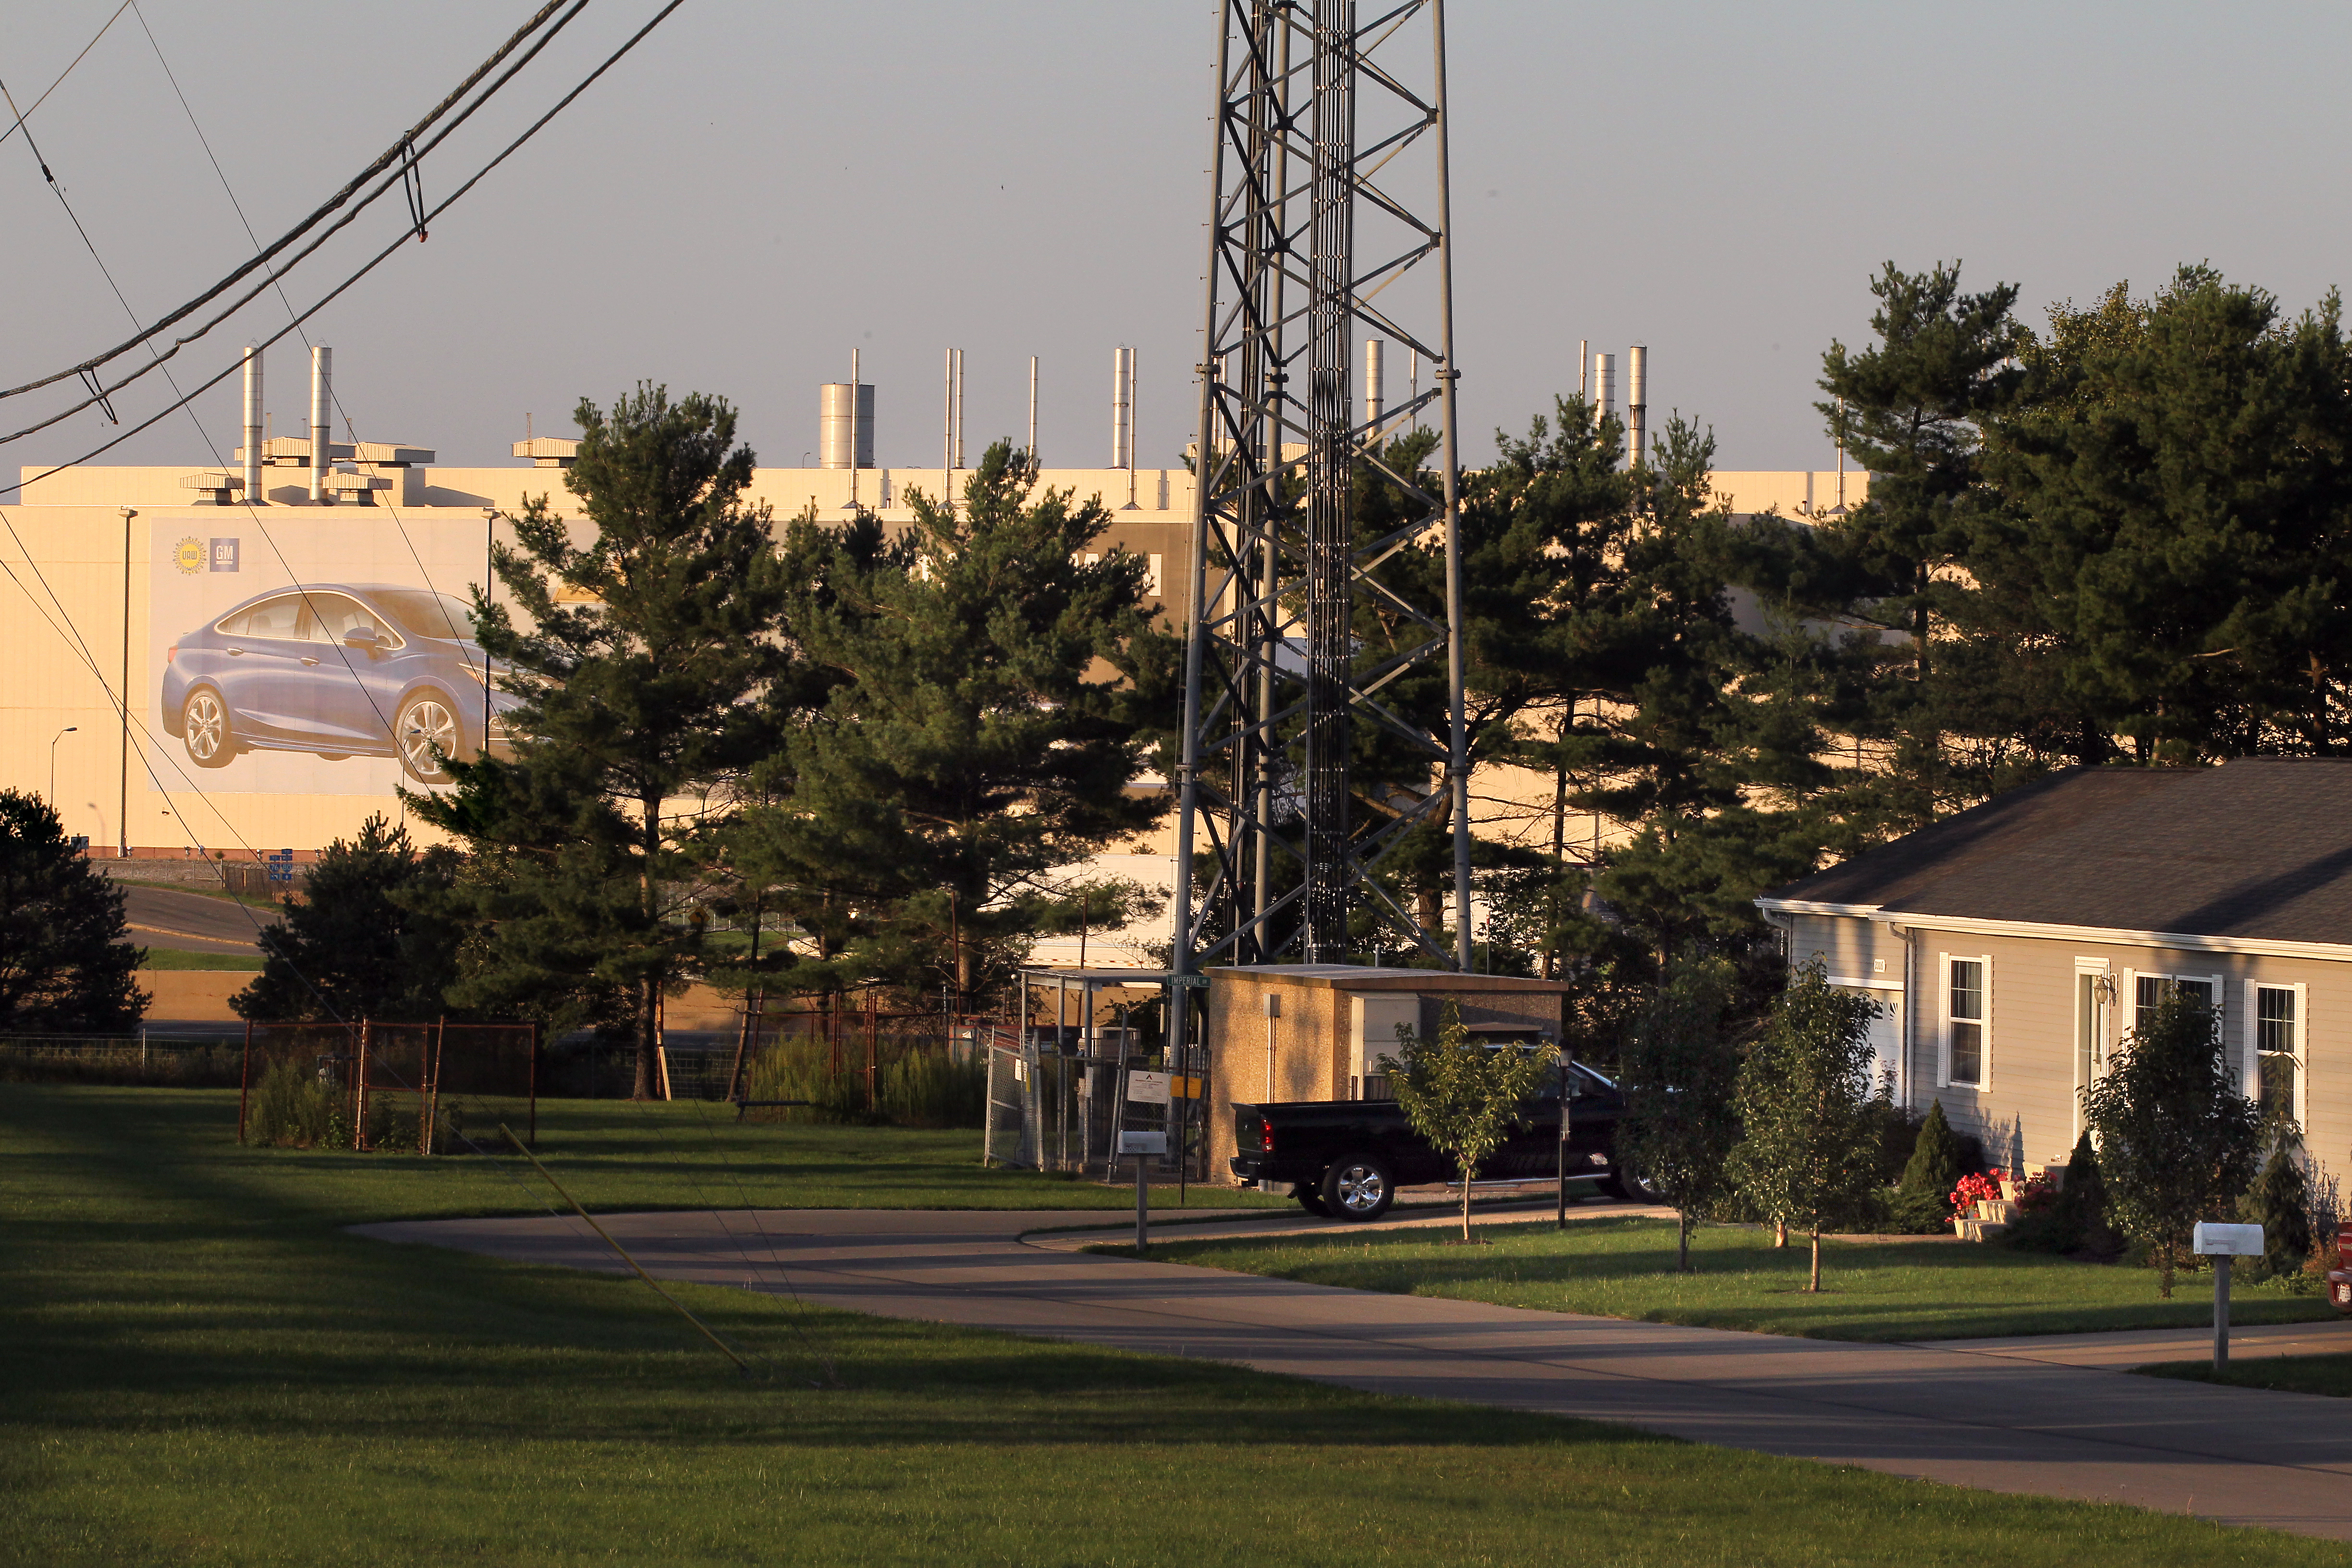 The GM plant just beyond a mobile home community in Lordstown, Ohio